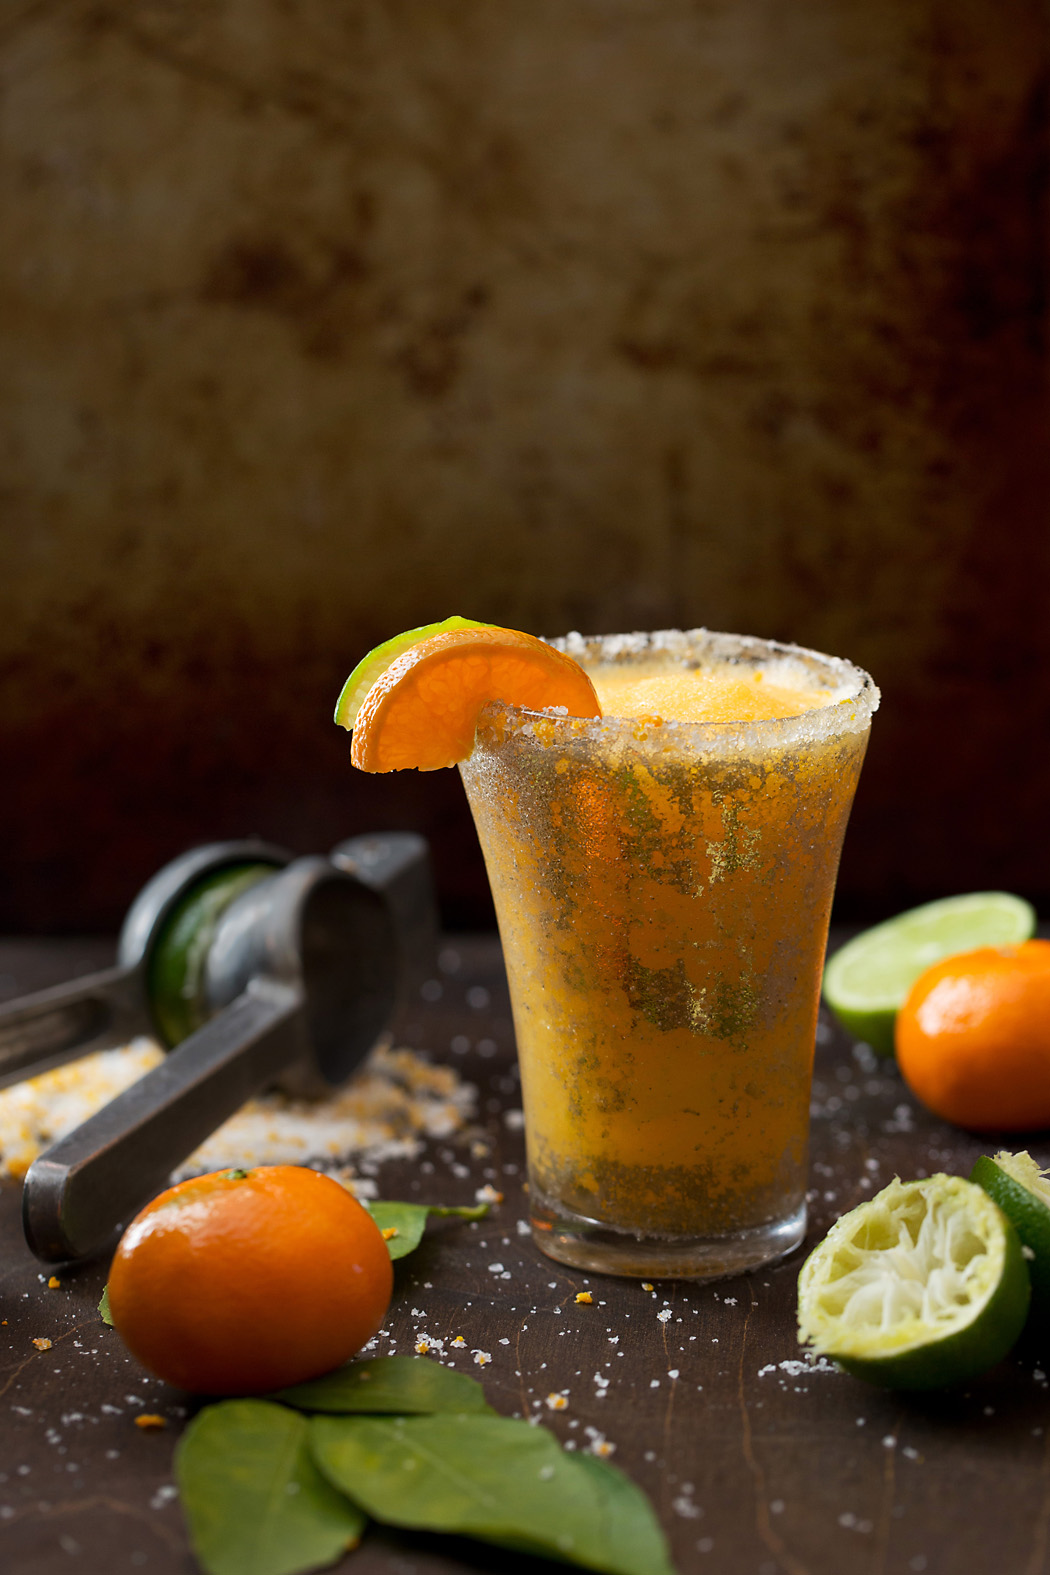 photo of orange and lime beverage by Elizabeth Gelineau